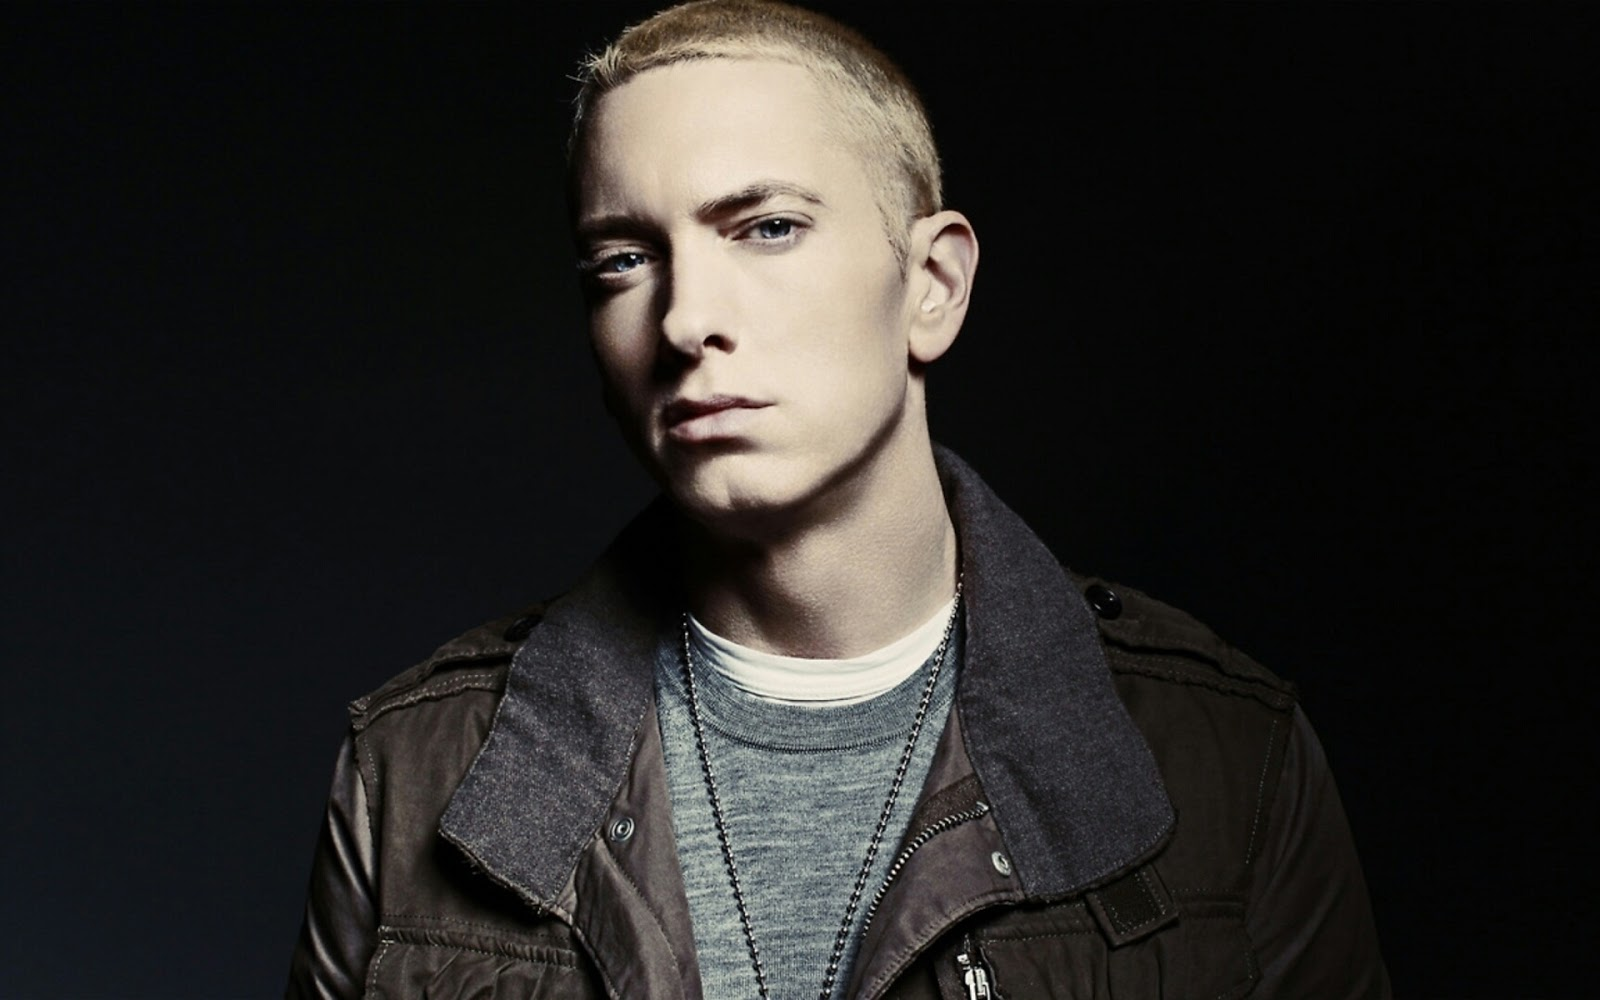 So Far... - Eminem: Testo (lyrics), traduzione e video